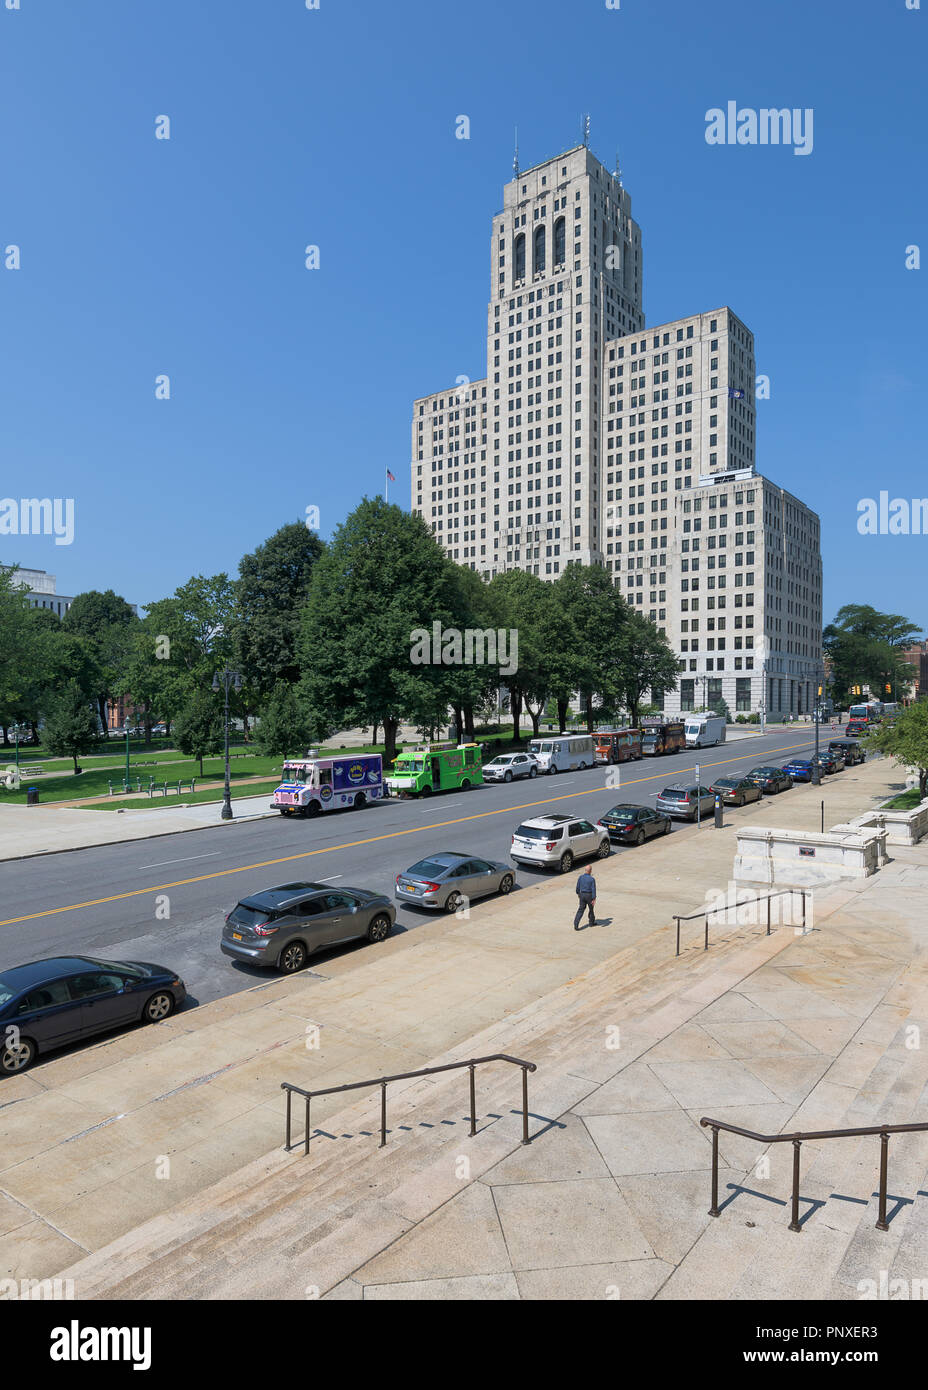 Downtown Albany High Resolution Stock Photography And Images Alamy